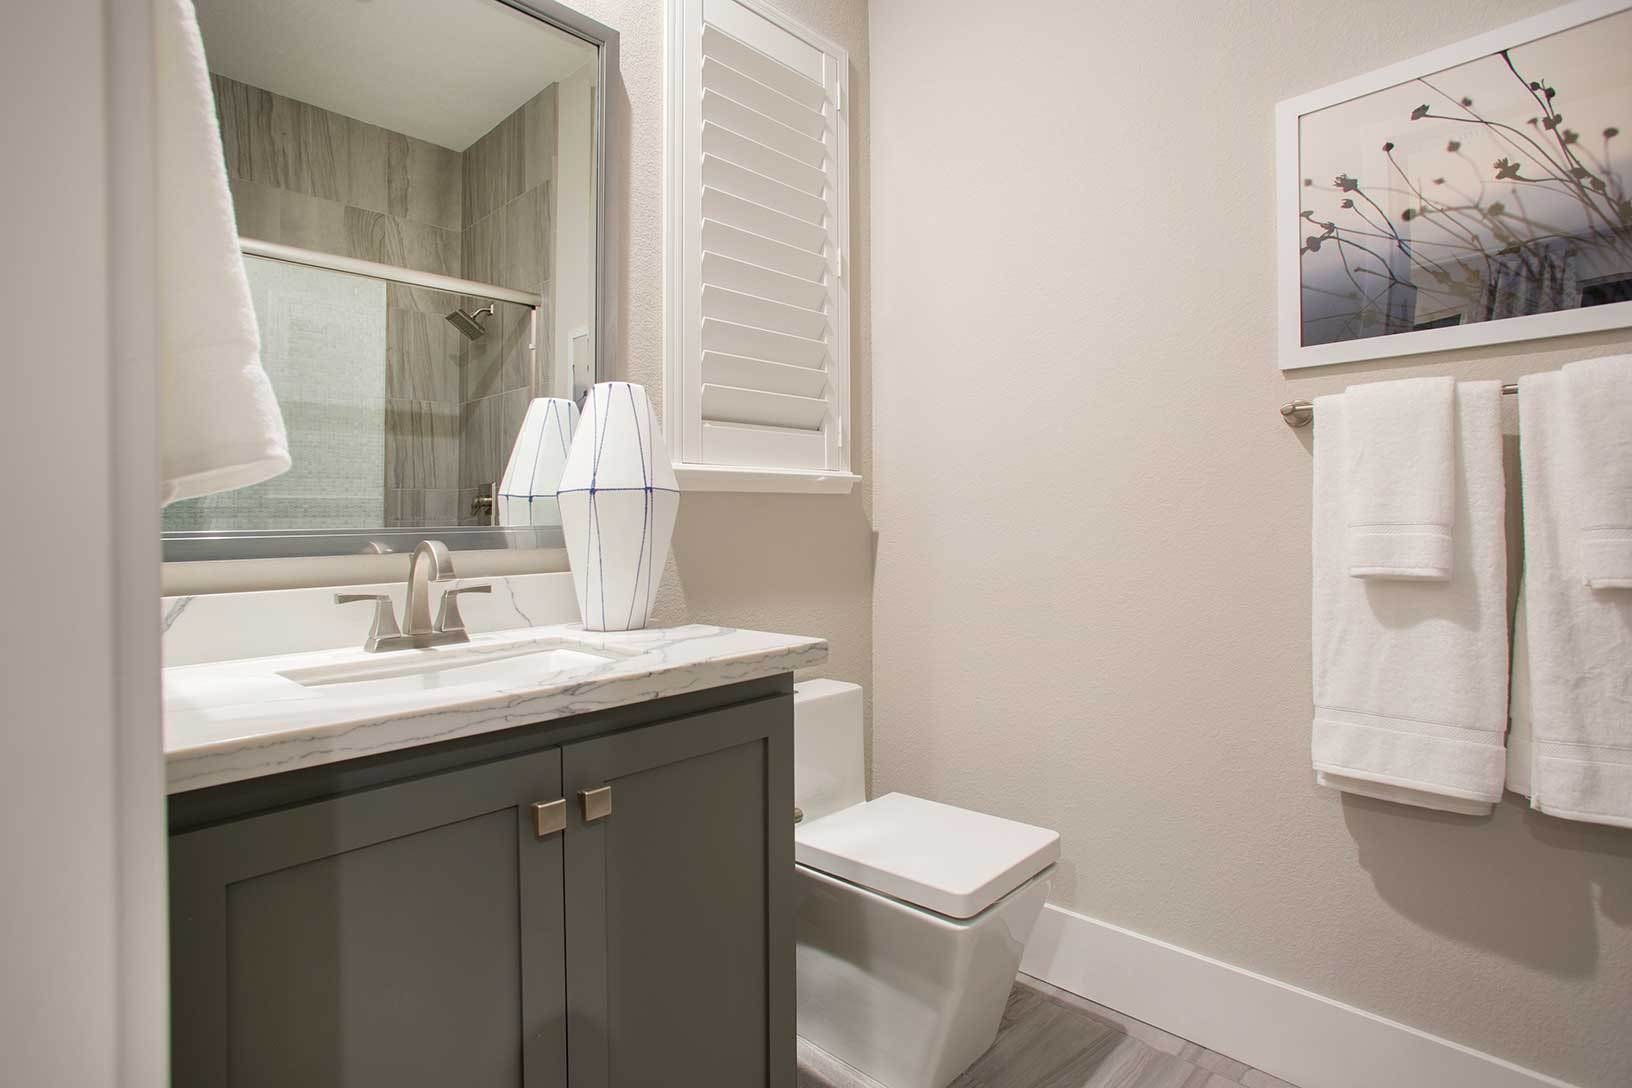 Bathroom featured in the Residence 3 By TRI Pointe Homes in Oakland-Alameda, CA